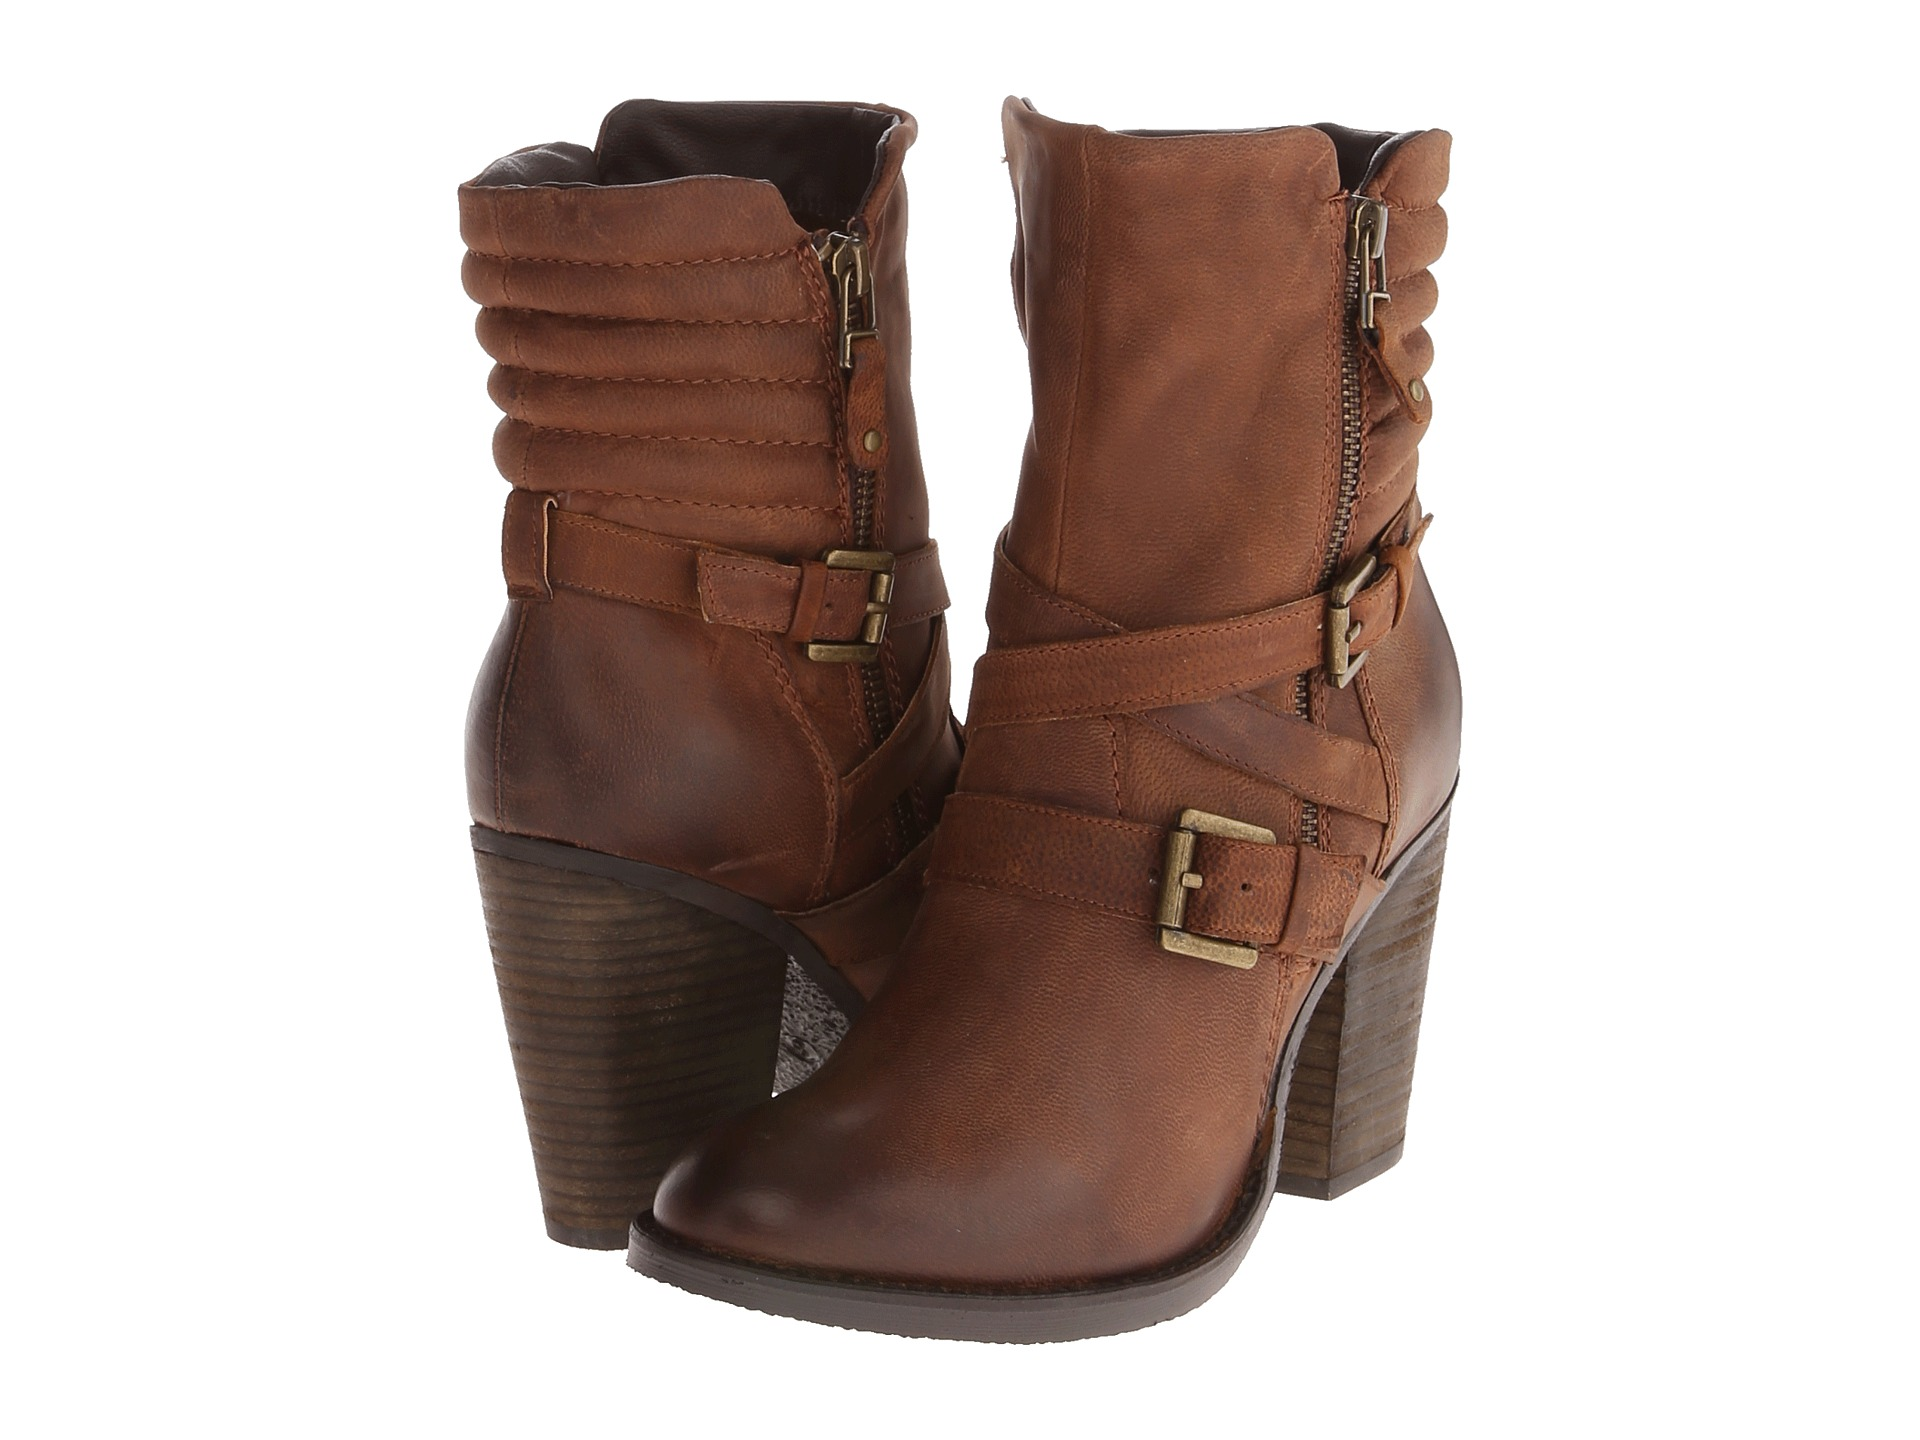 No results for steve madden raleighh cognac - Search Zappos